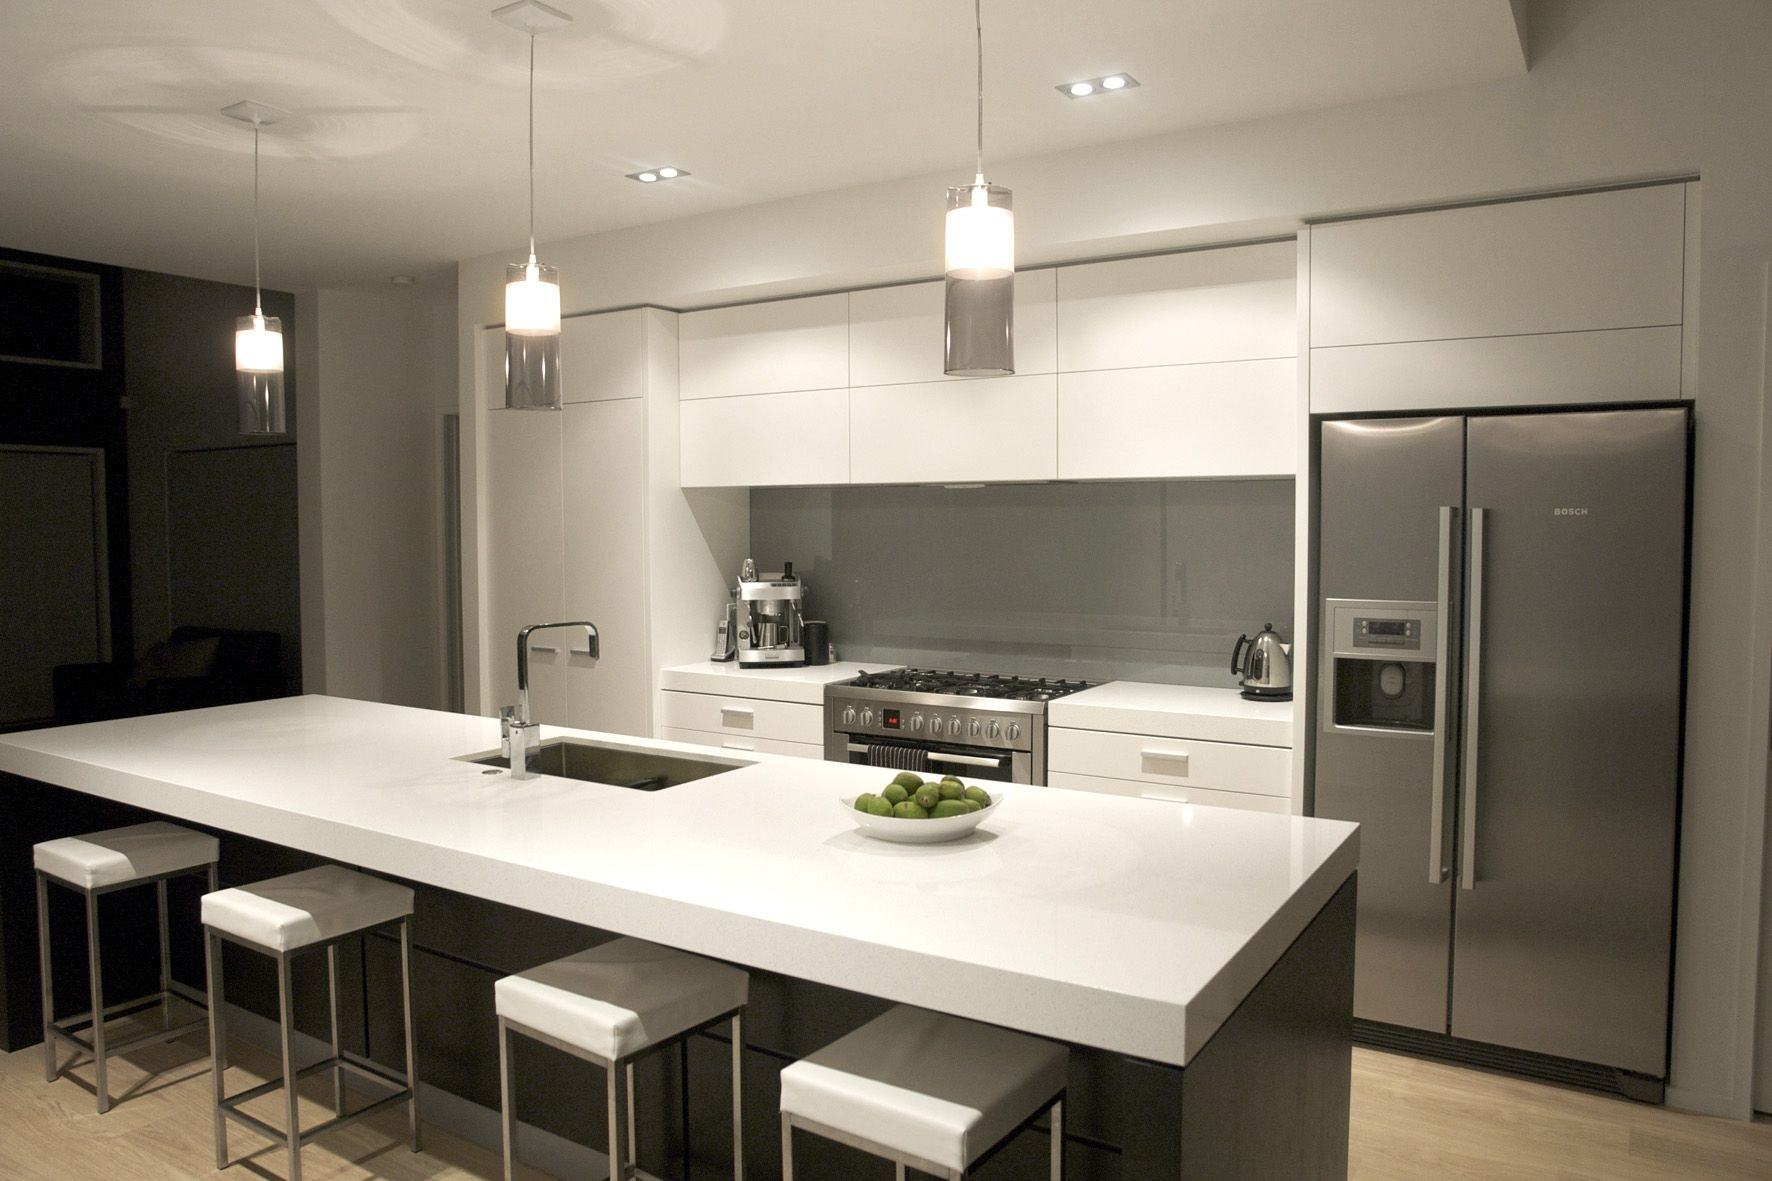 modern kitchen designs nz Google Search Kitchen